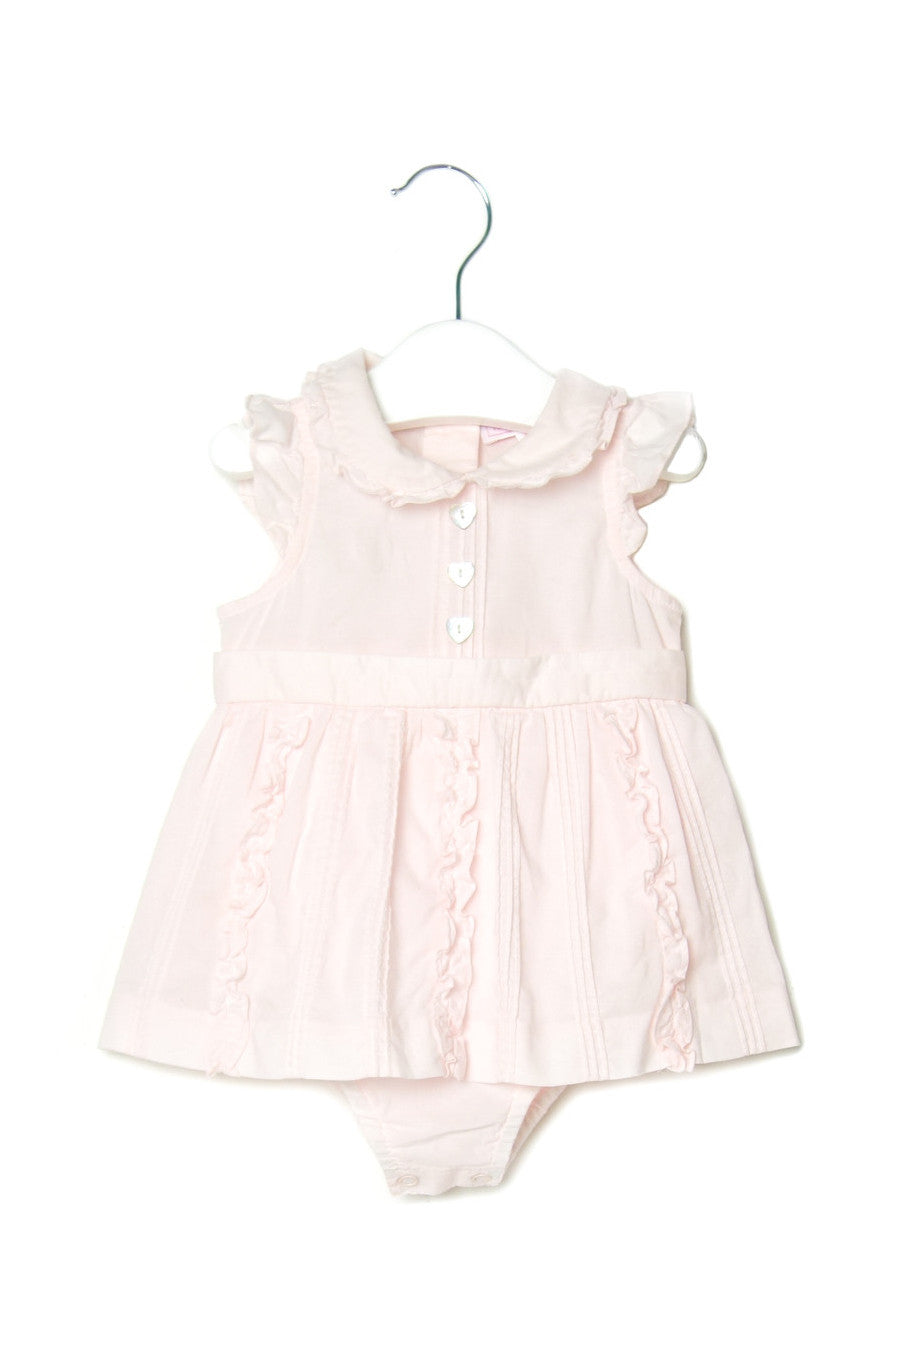 10001951 Nicholas & Bears Baby~Romper Dress 6M at Retykle